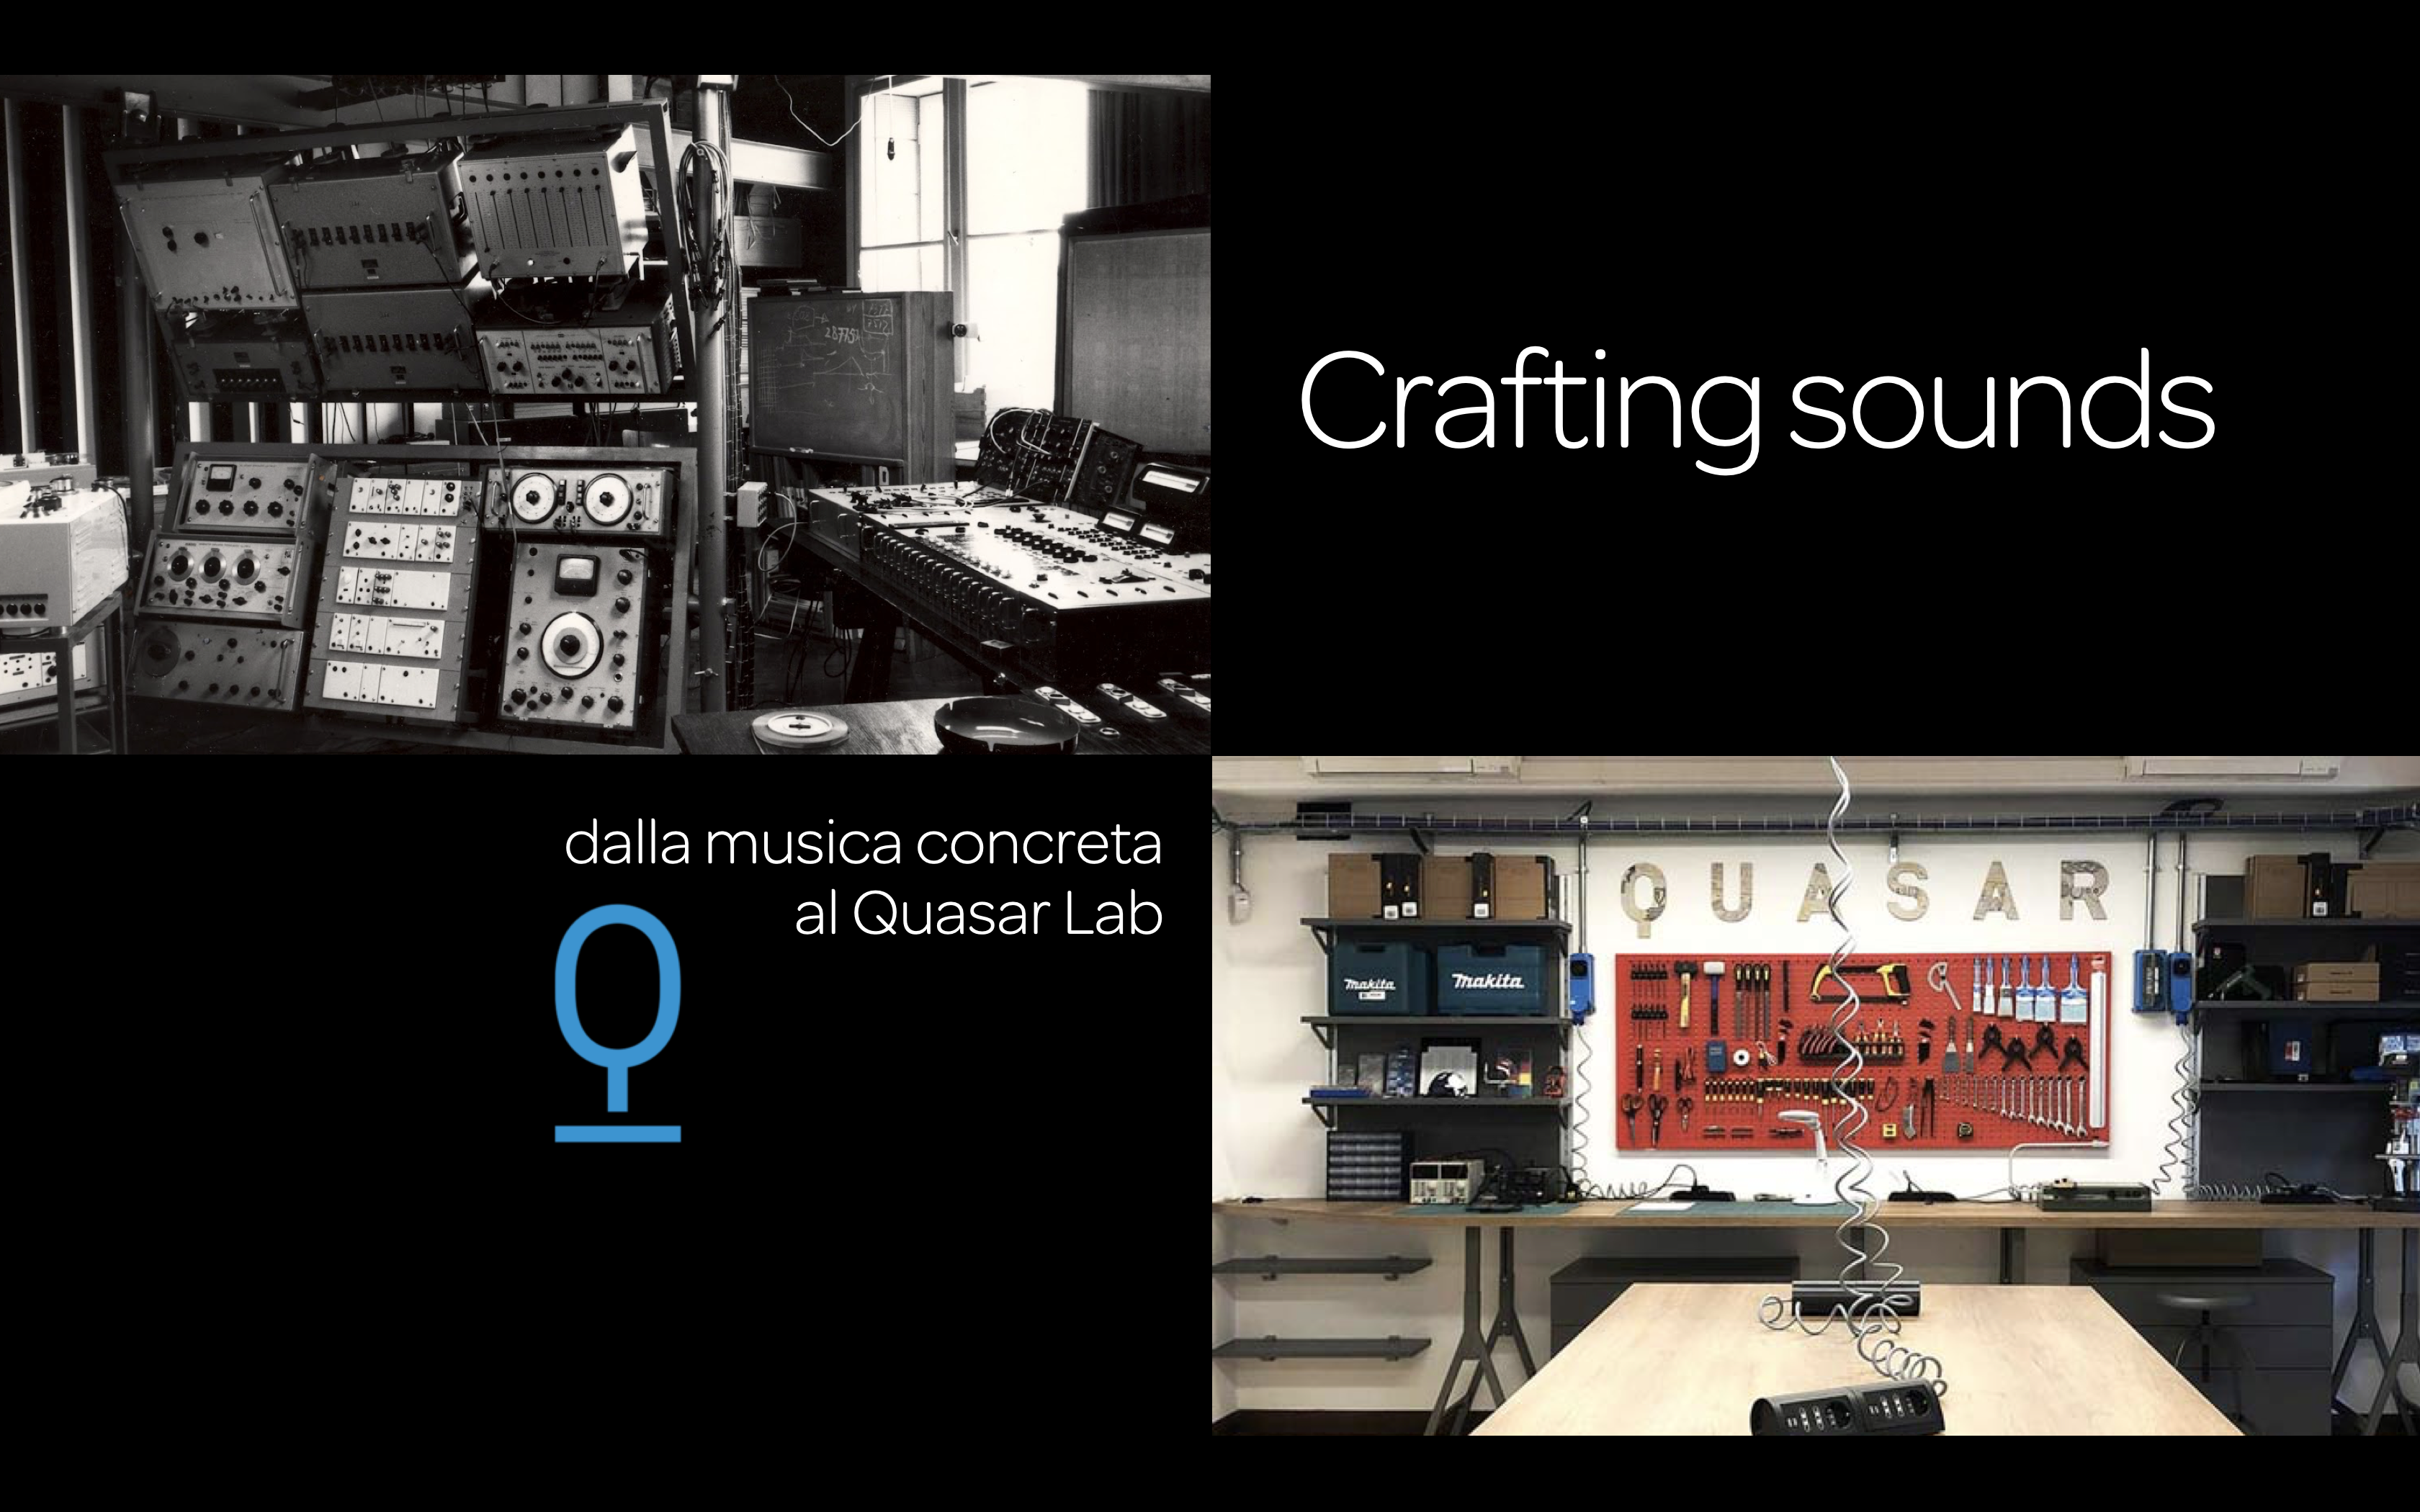 Crafting sounds